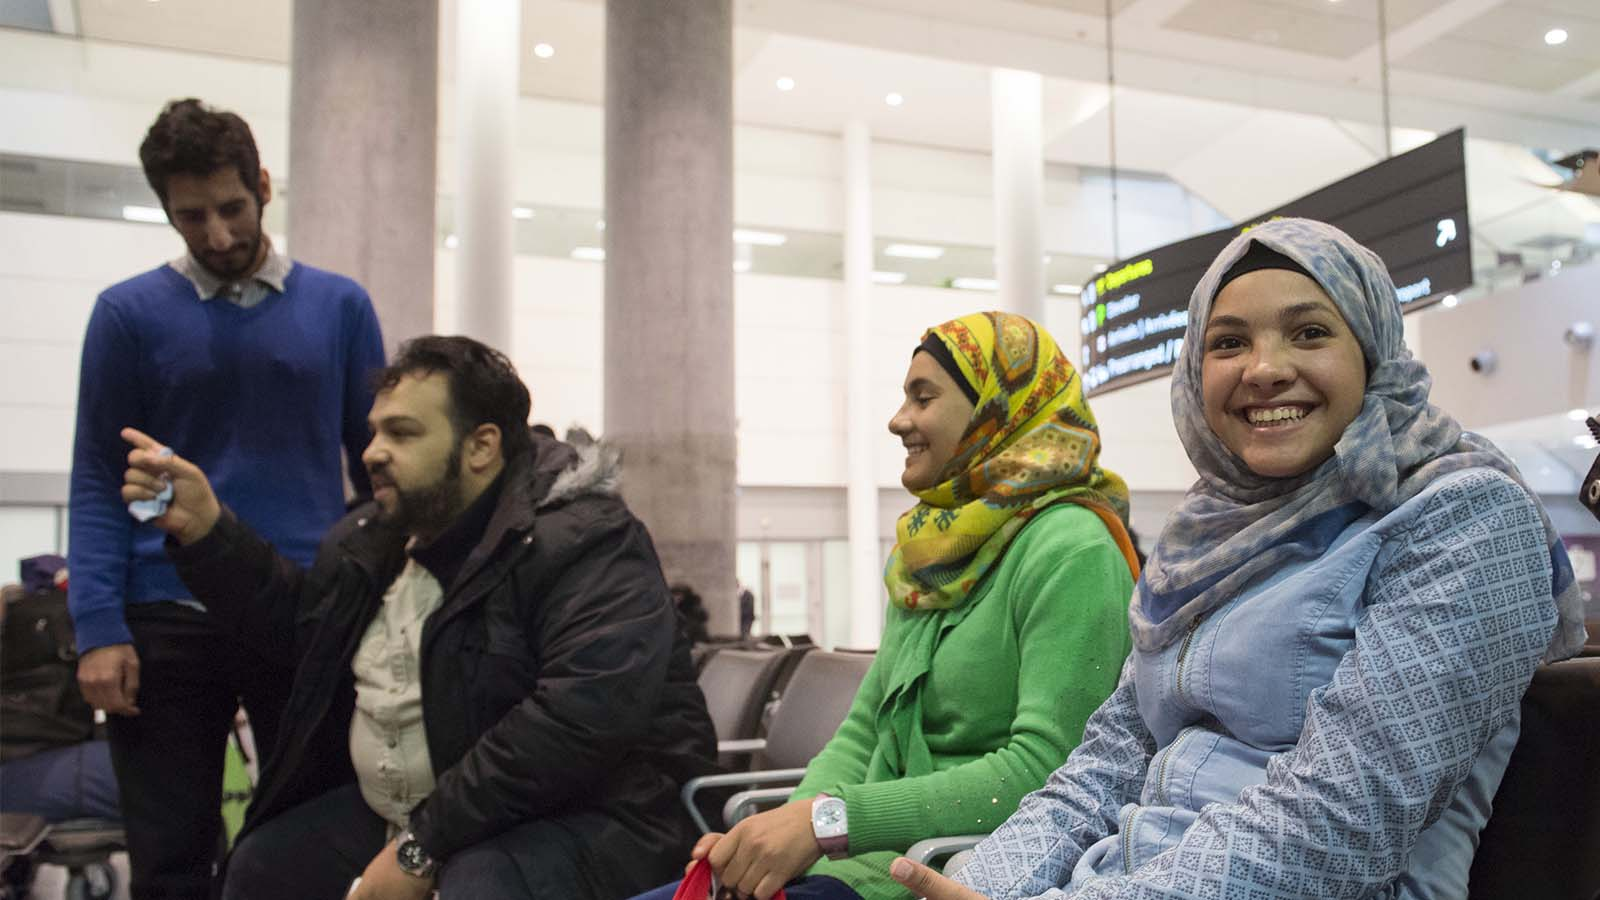 Syrian refugee siblings Rama, right, Riem, and Raniem take a rest with translators Bassam Alolayan, left, and Mohammad Samkari, at the Toronto Pearson International Airport after arriving from Frankfurt, Germany on Thursday, Dec. 10, 2015.  Photo by Hannah Yoon